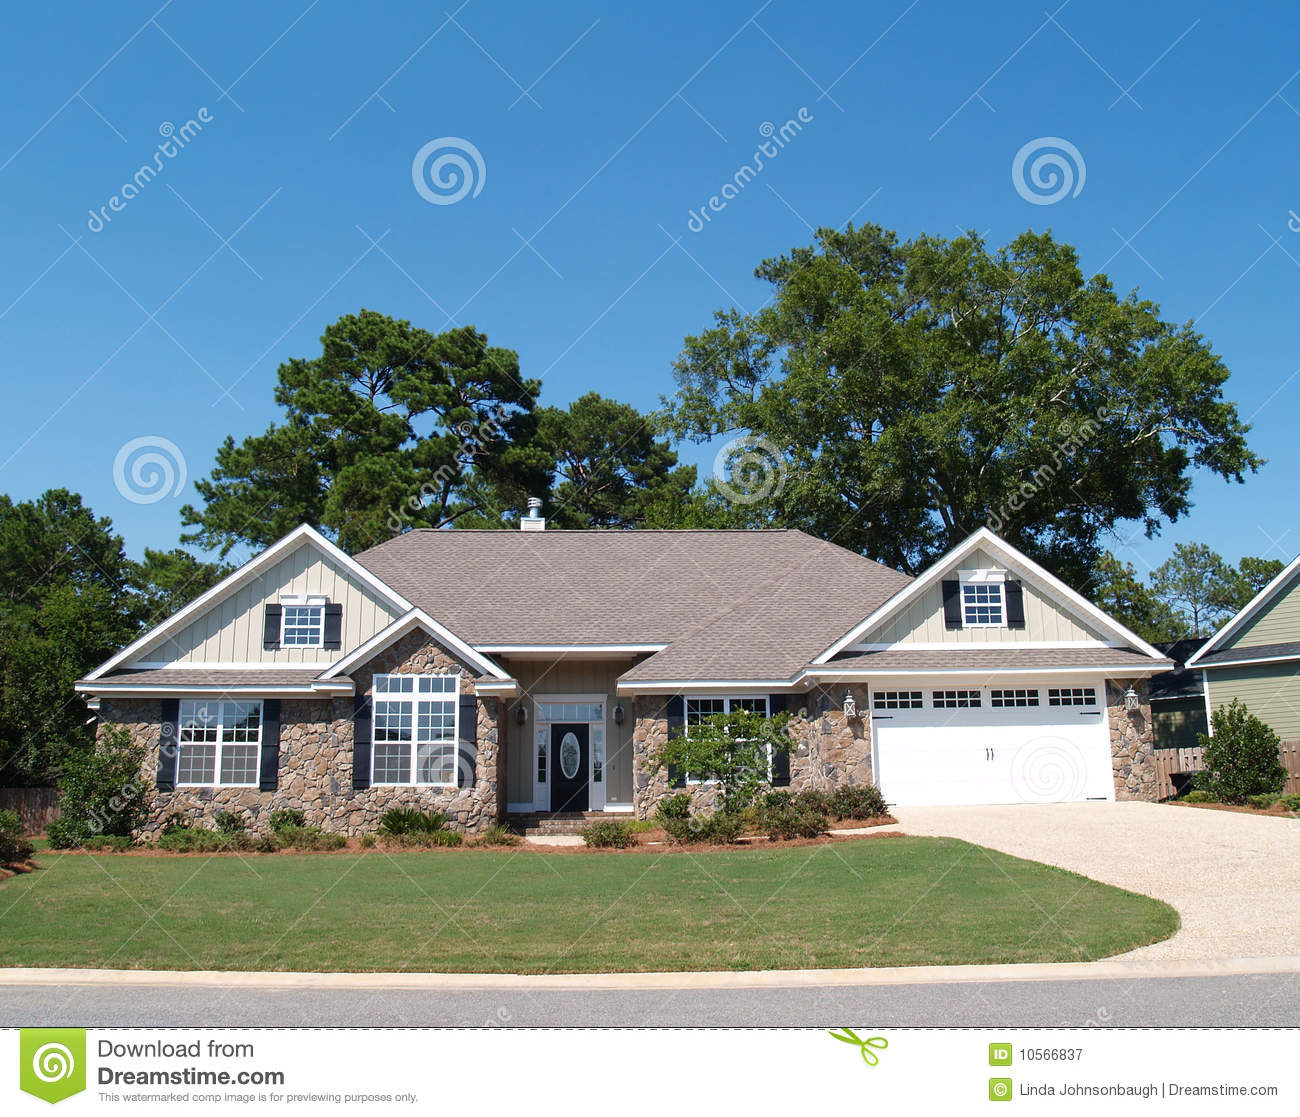 One story stone residential home royalty free stock for Residential house pictures